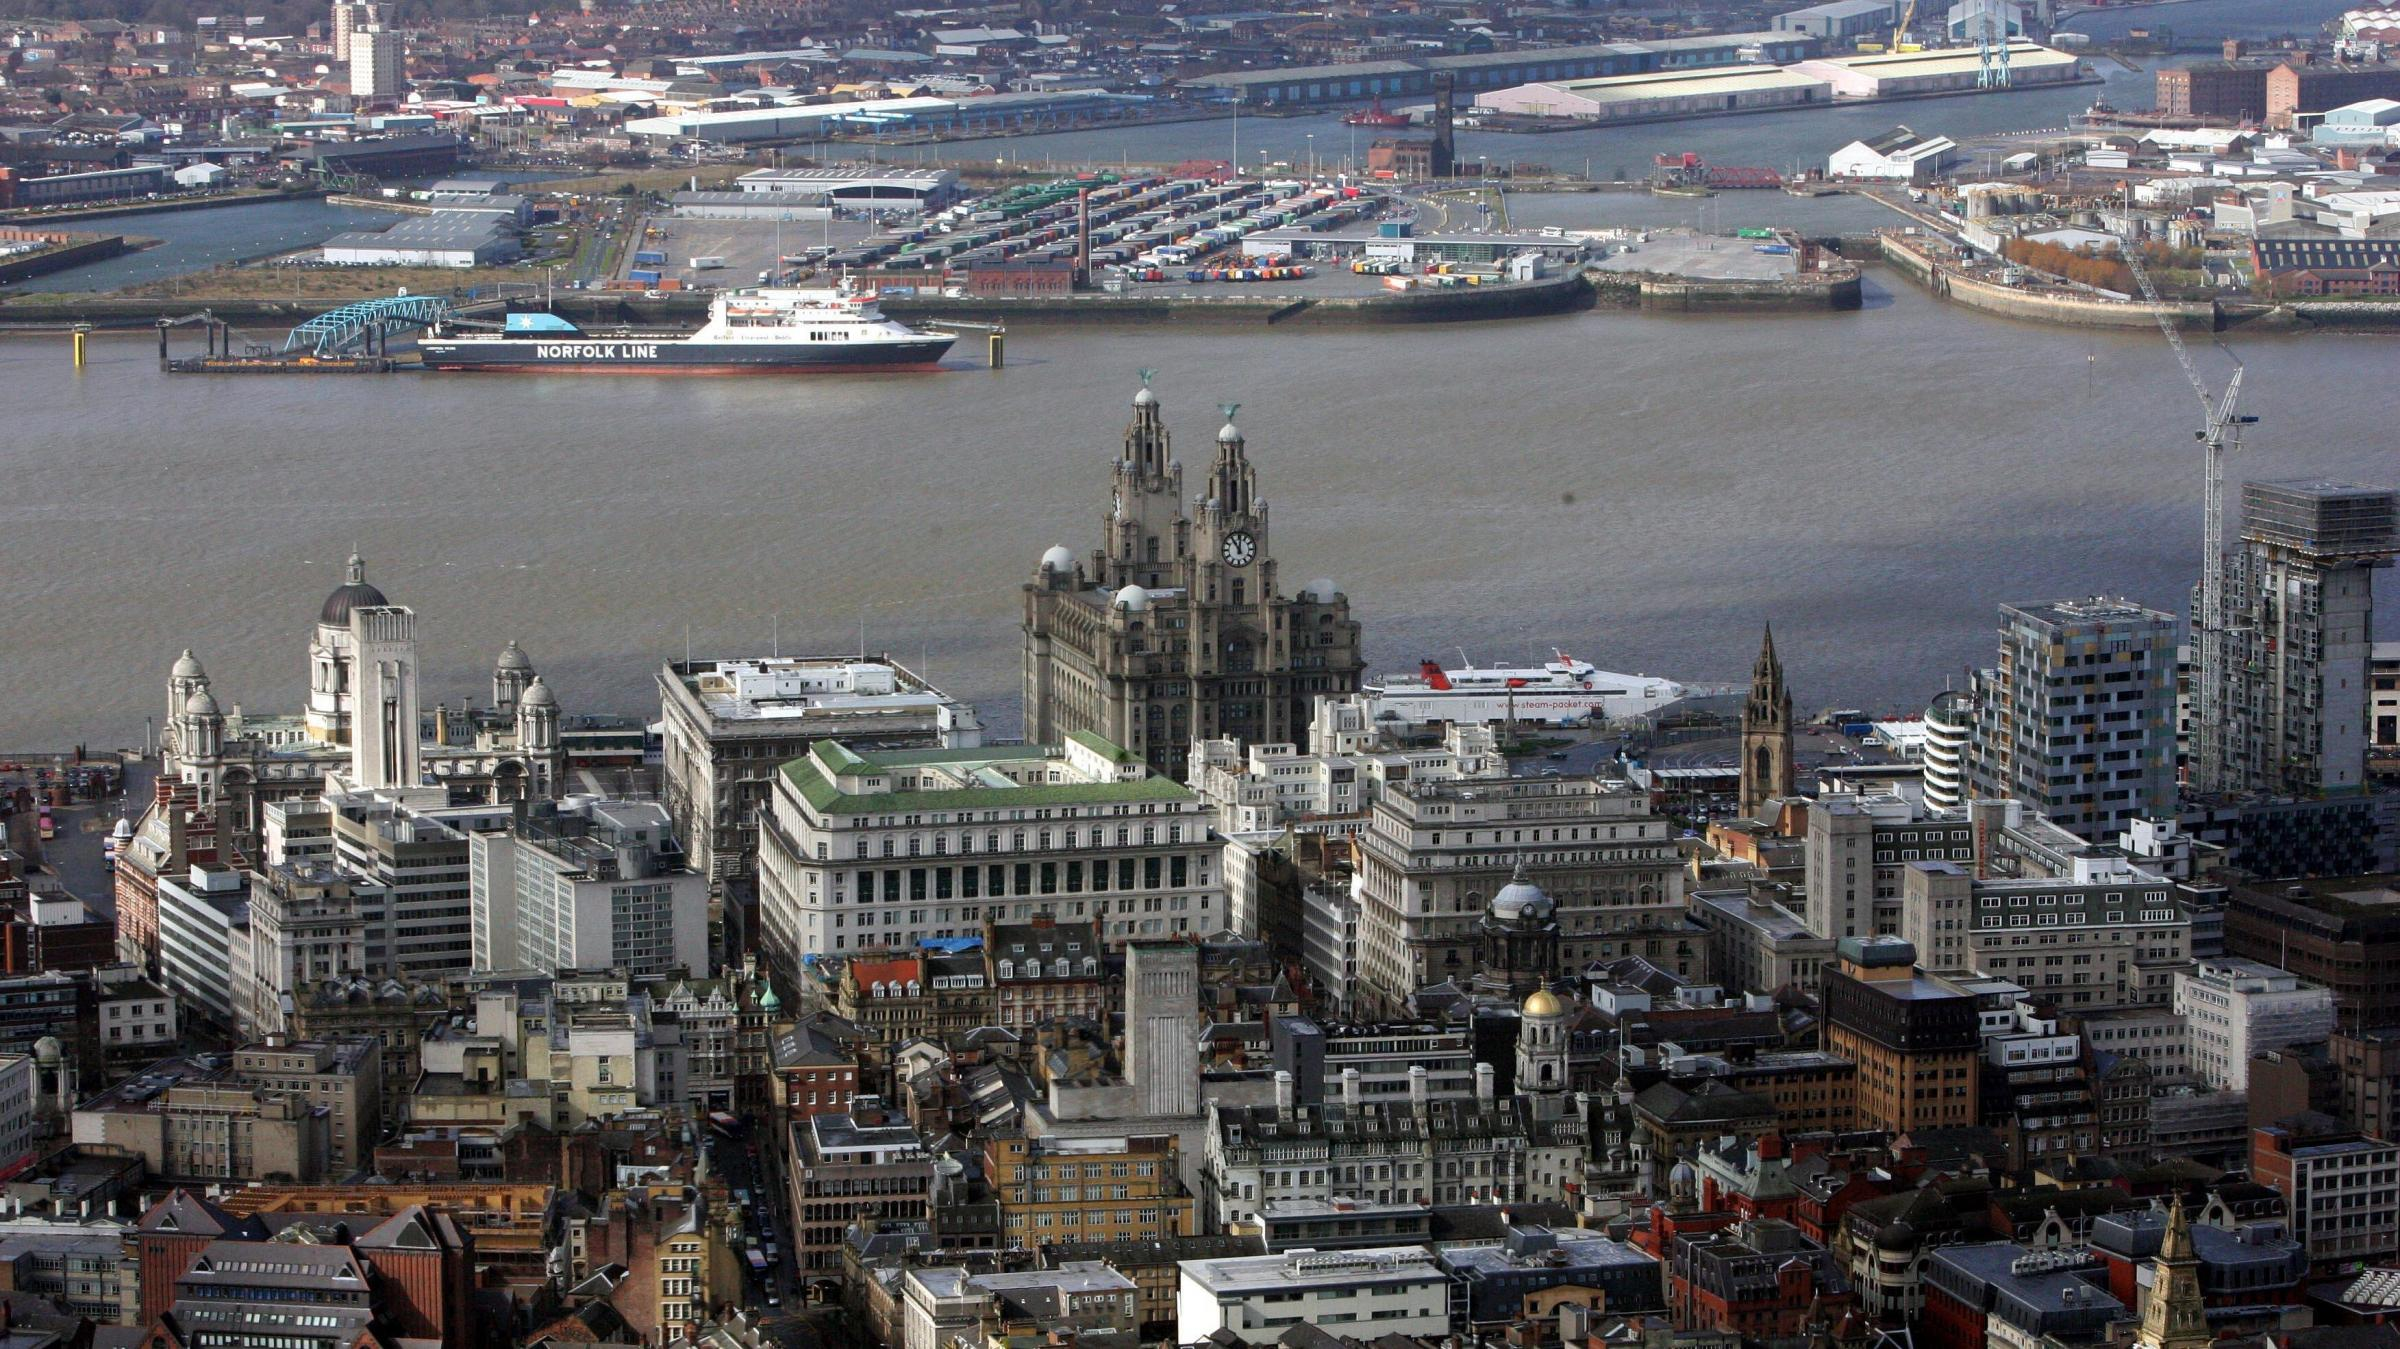 Bid to host 2022 Commonwealth Games in Liverpool launched